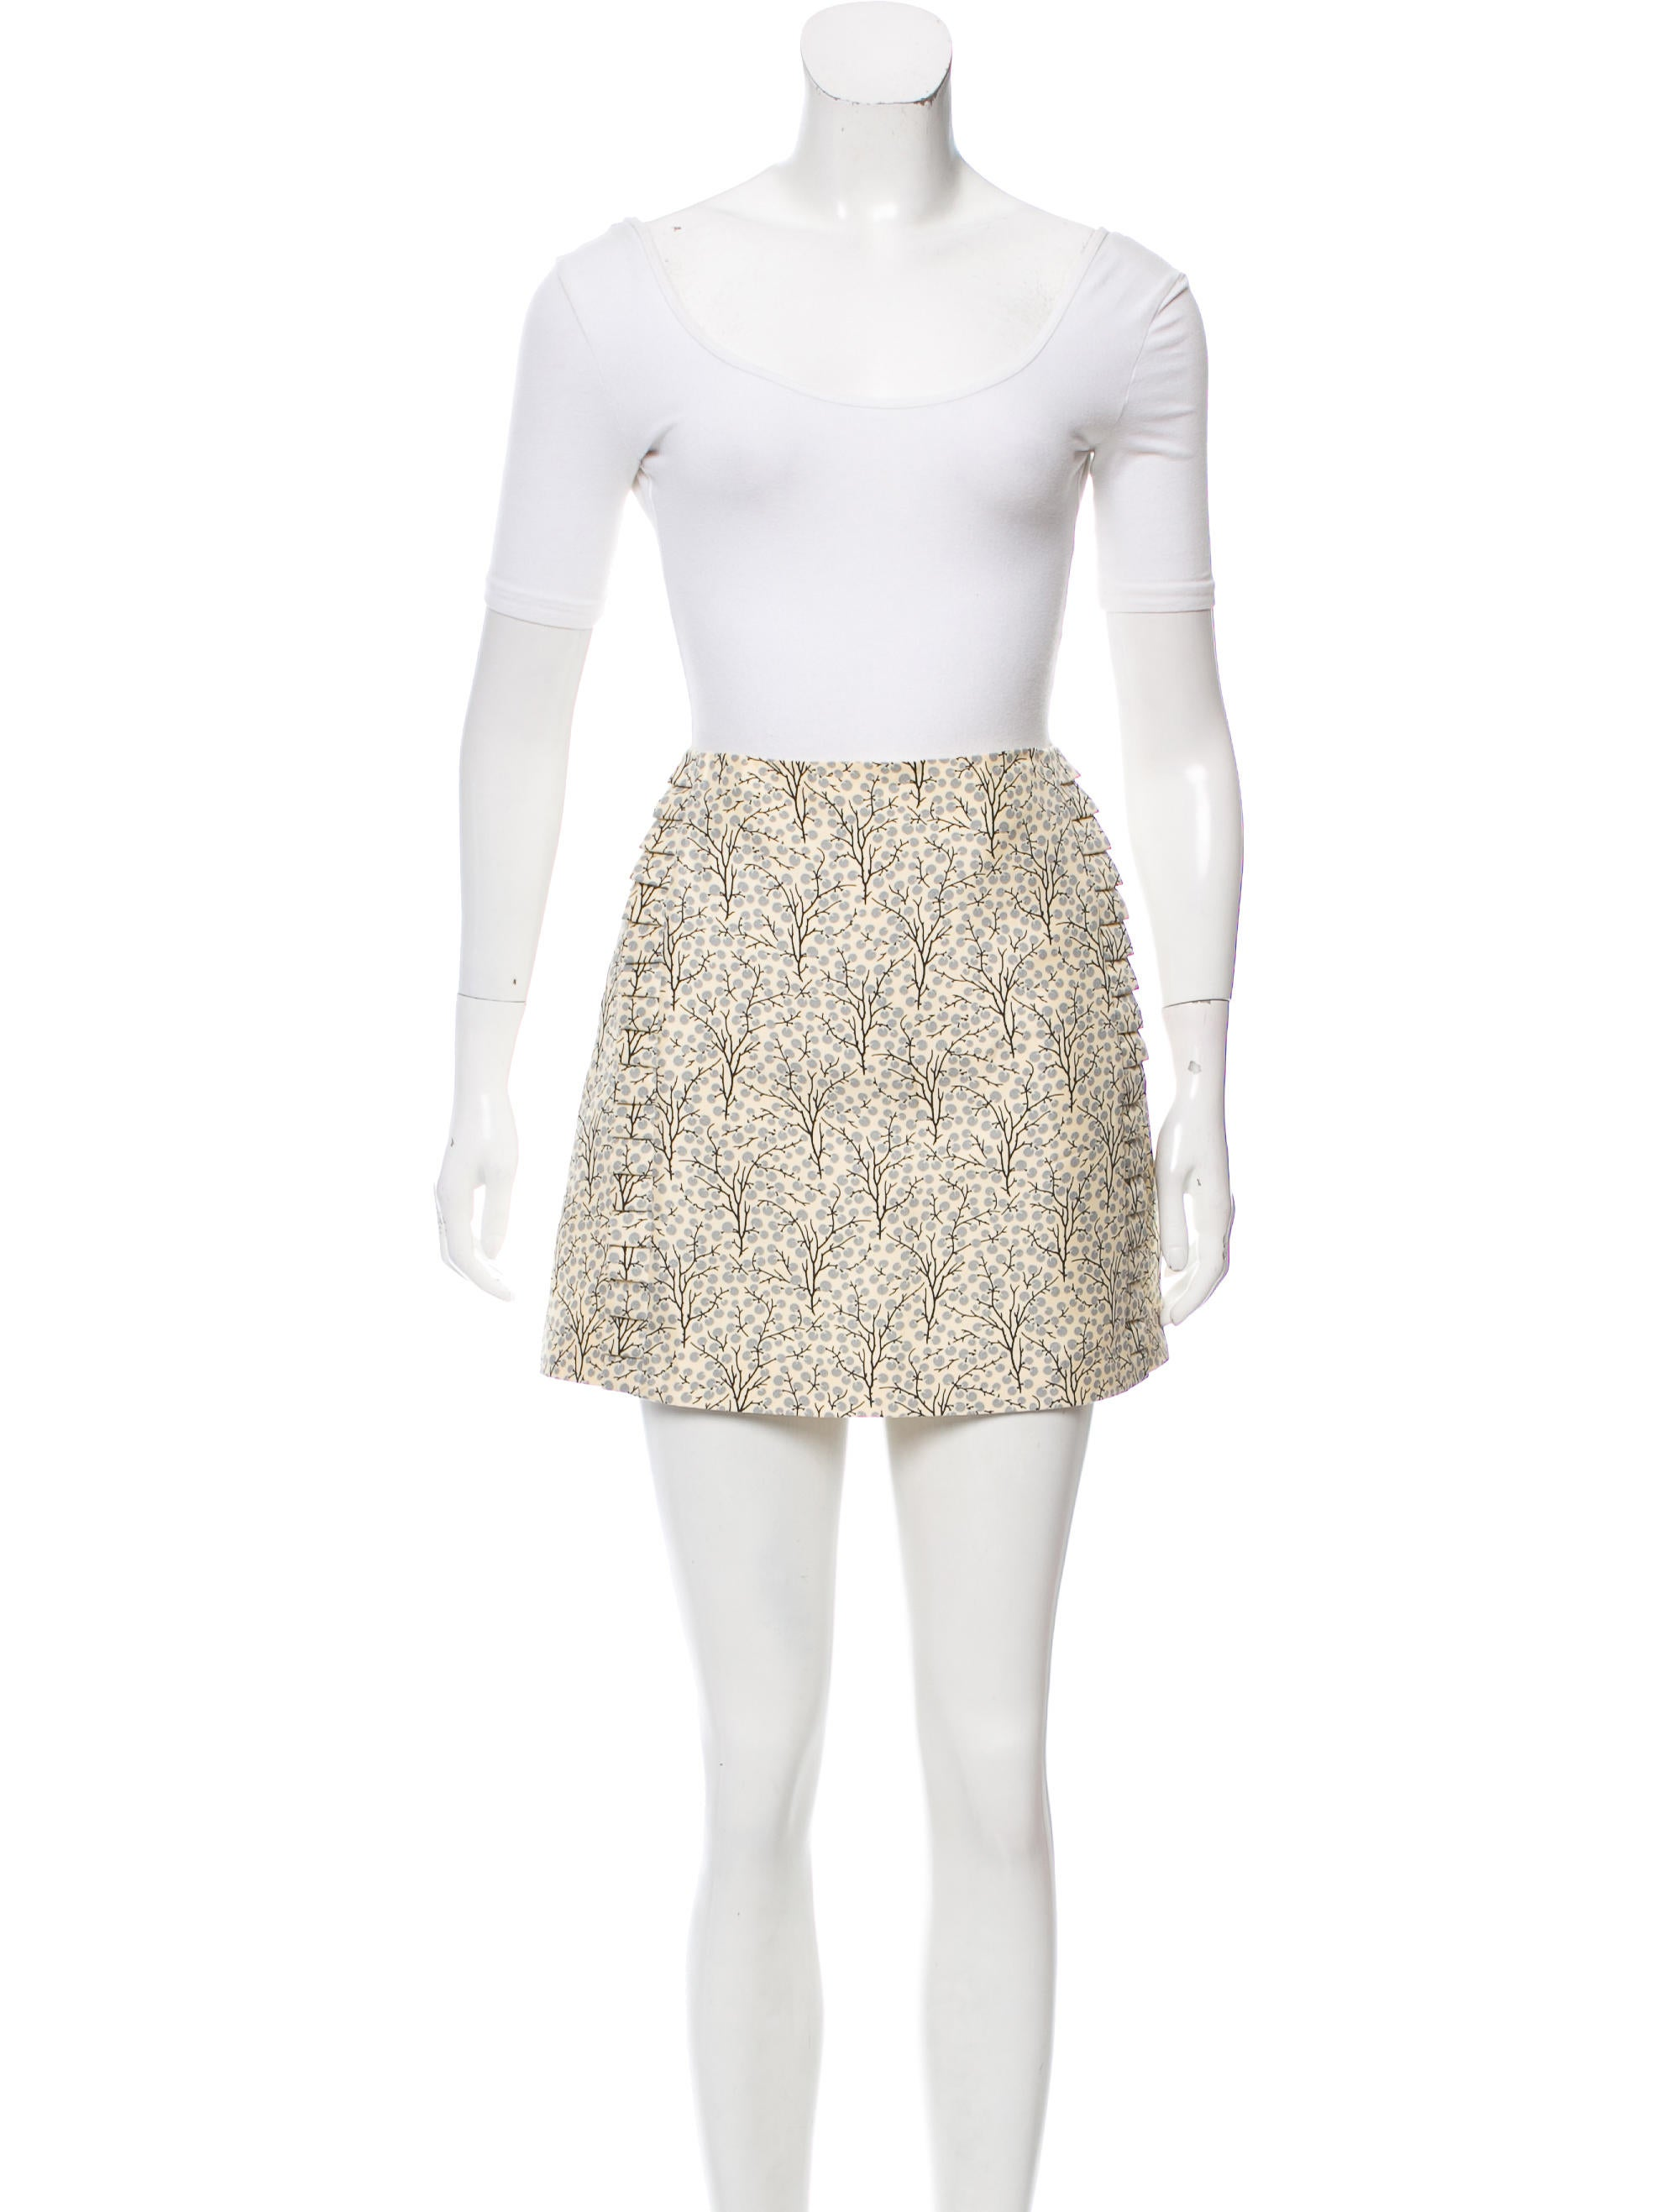 Paisley Knit Skirt Set: Two-piece set in a soft and flowing knit. Faux-wrap with surplice front and flattering side ruching. Faux-wrap with surplice front and flattering side ruching. Sweeping, maxi-length skirt with yoke waist.4/5(9).